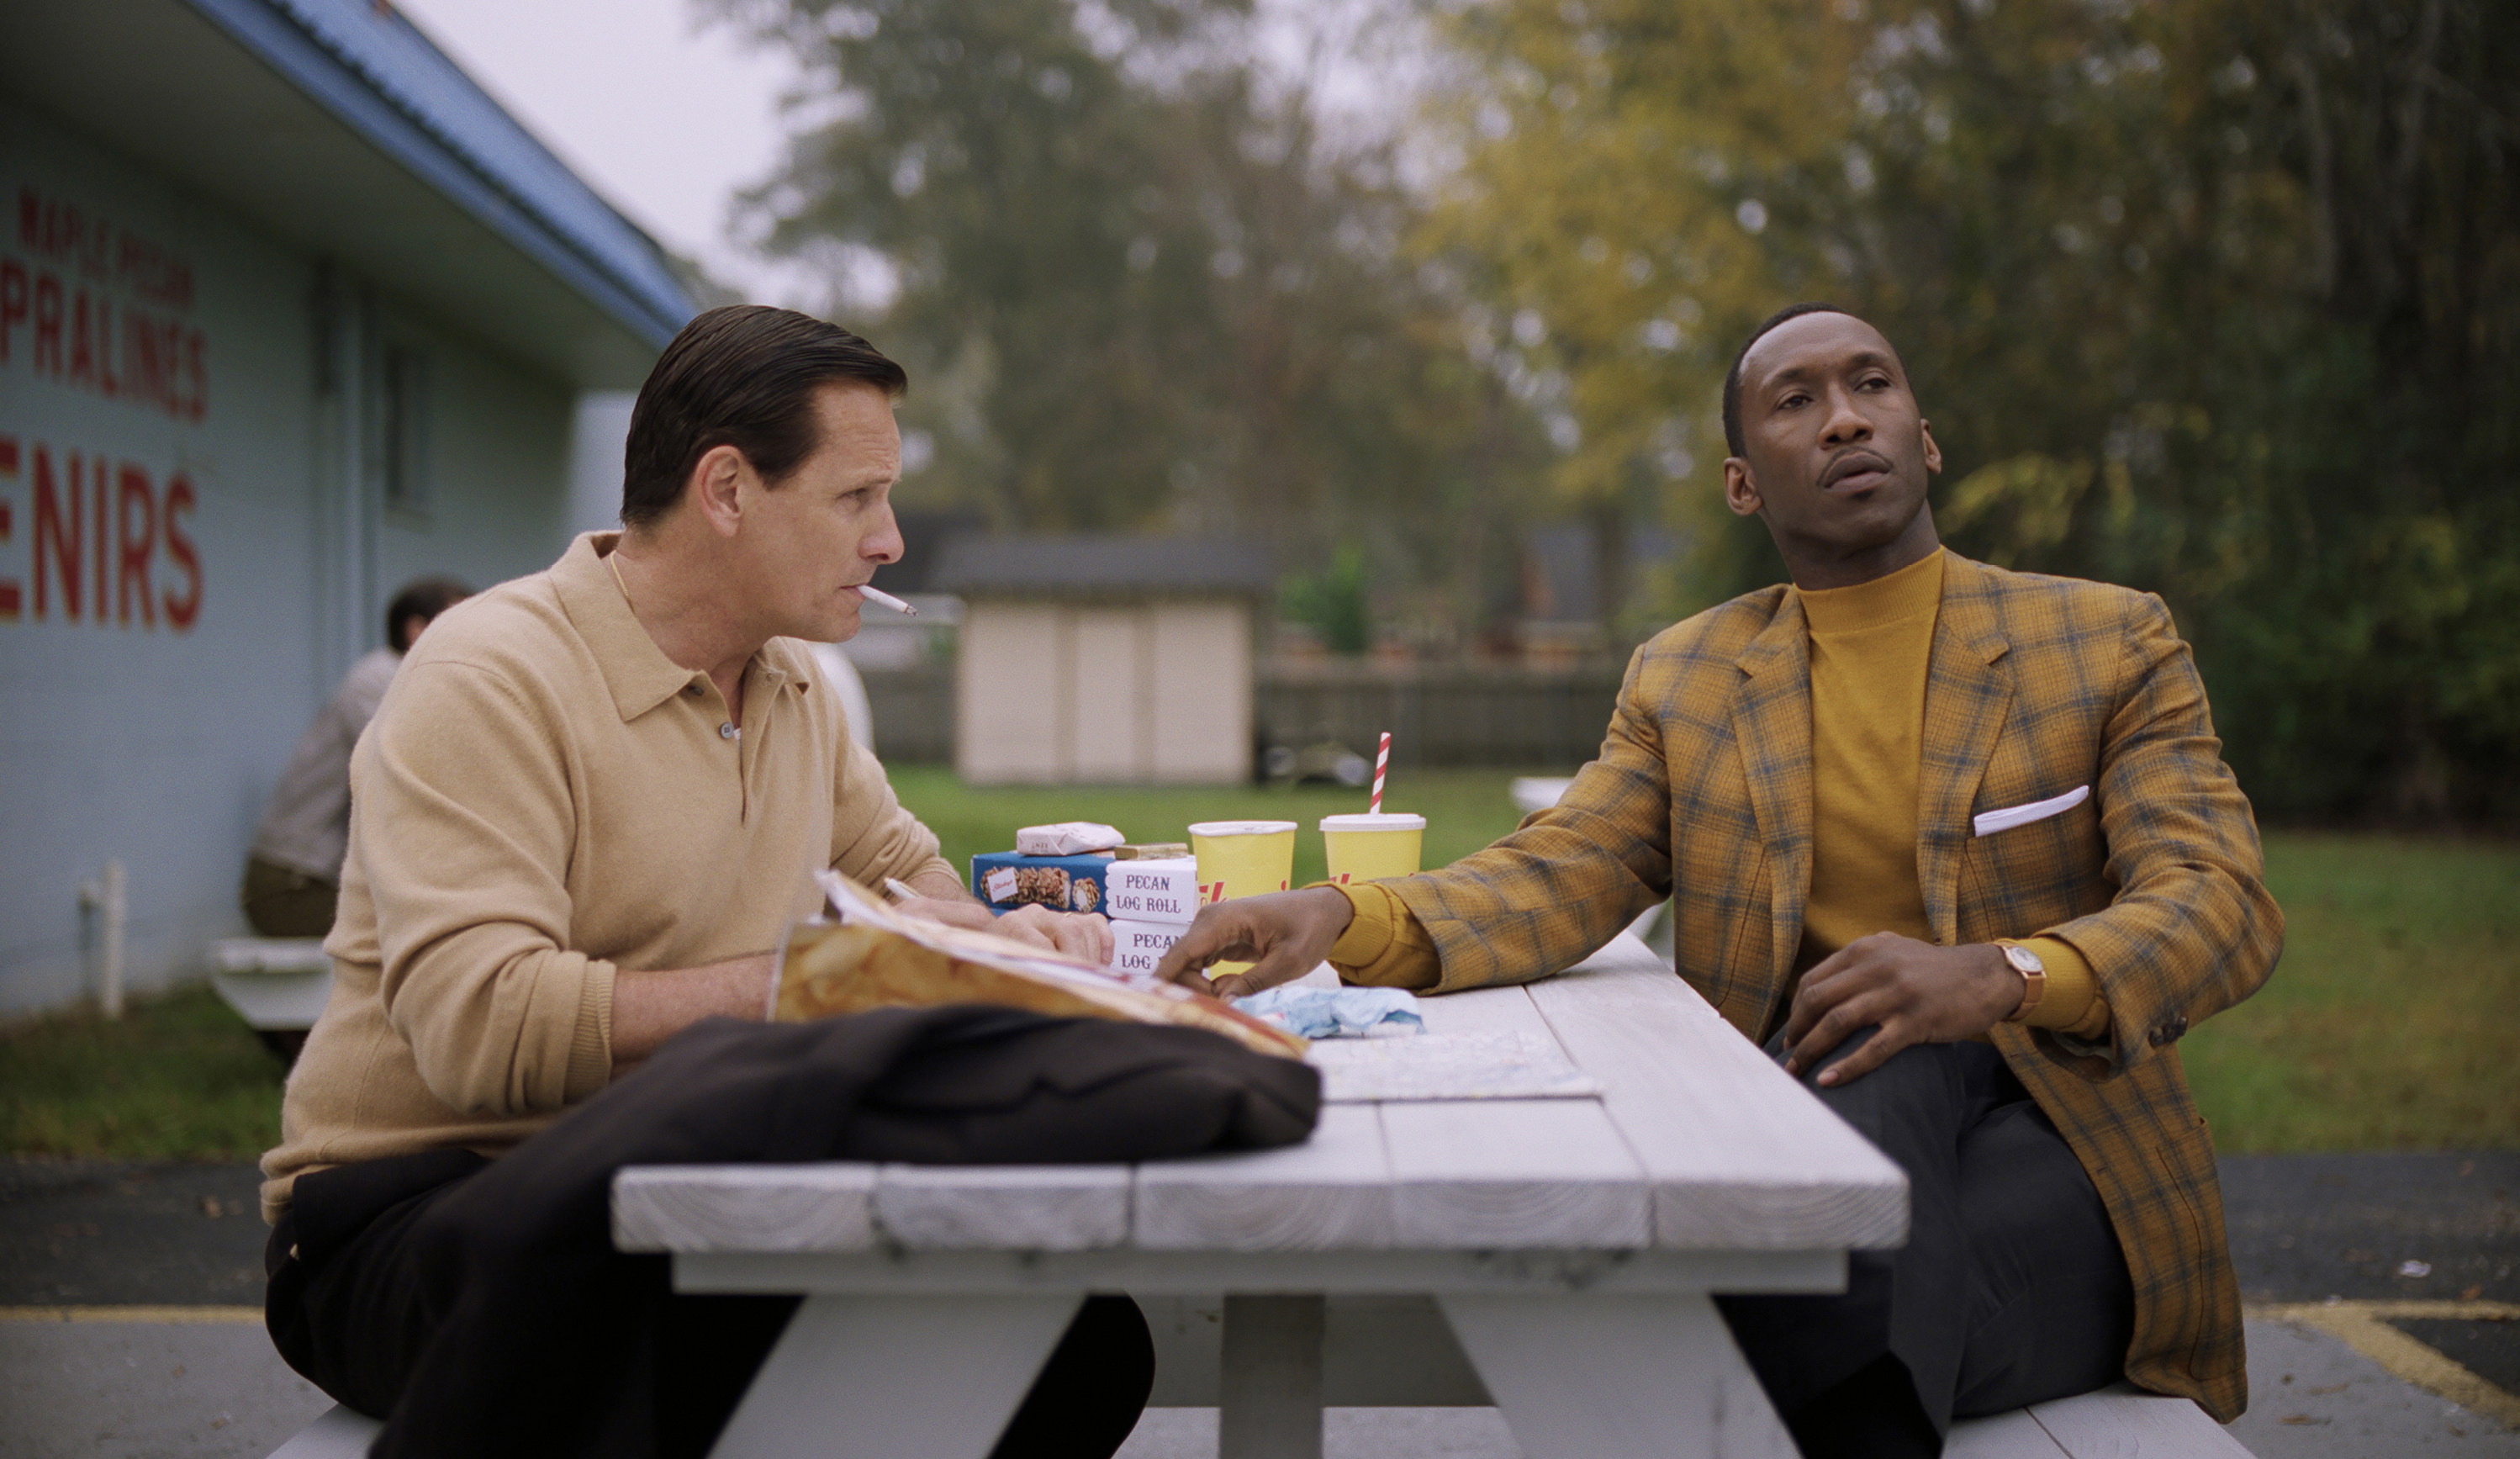 Viggo Mortensen as Tony Vallelonga and Mahershala Ali as Donald Shirley in Green Book, directed by Peter Farrelly.